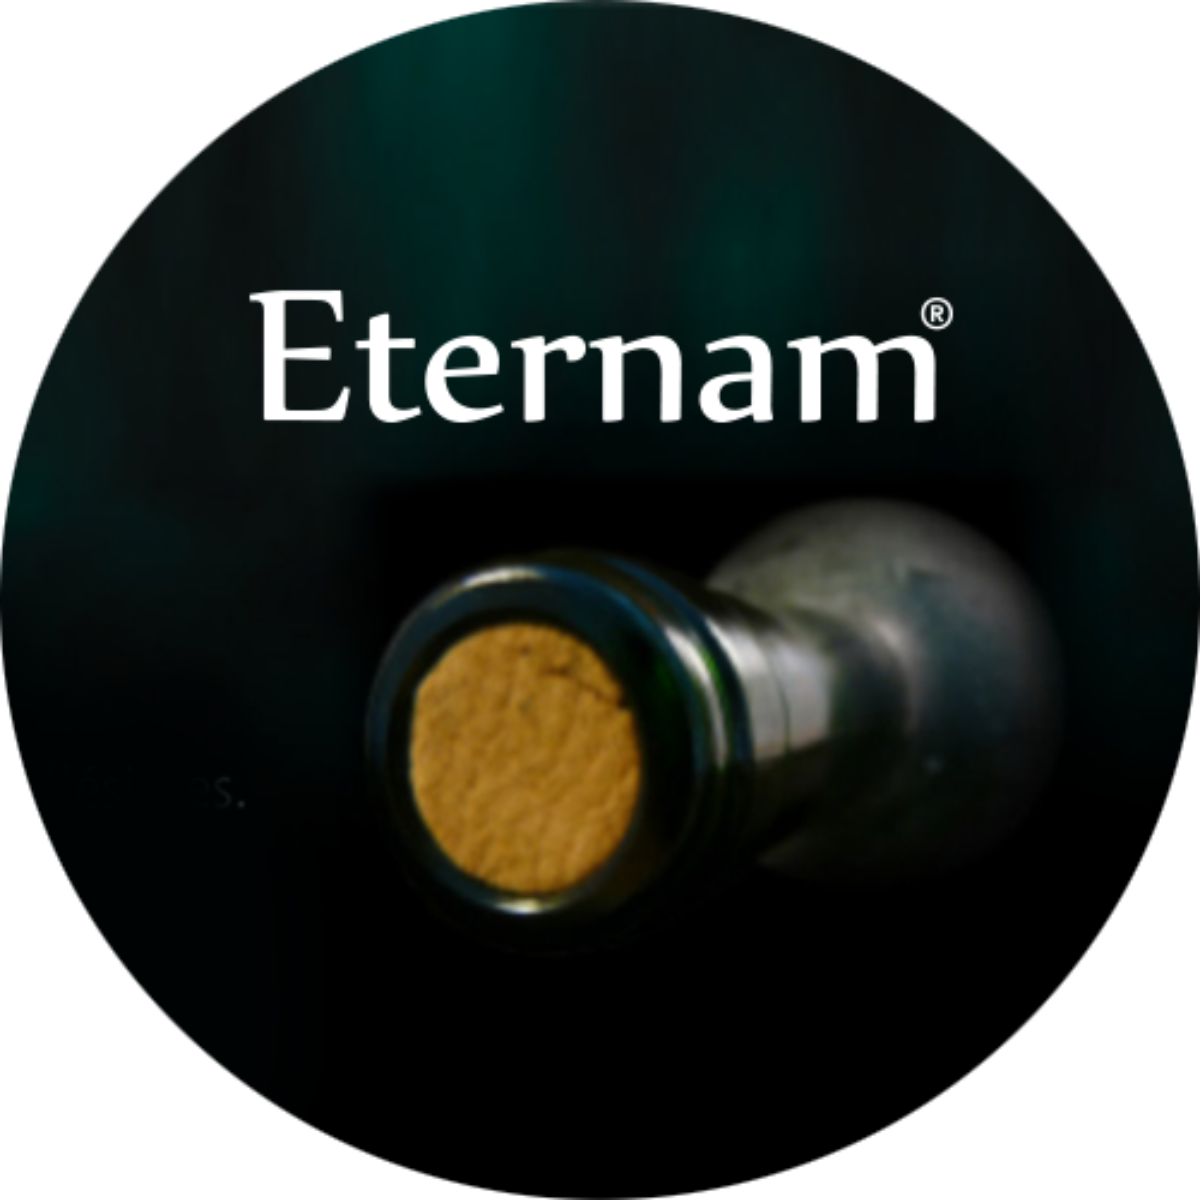 Repackaging of old vintages: Eternam®